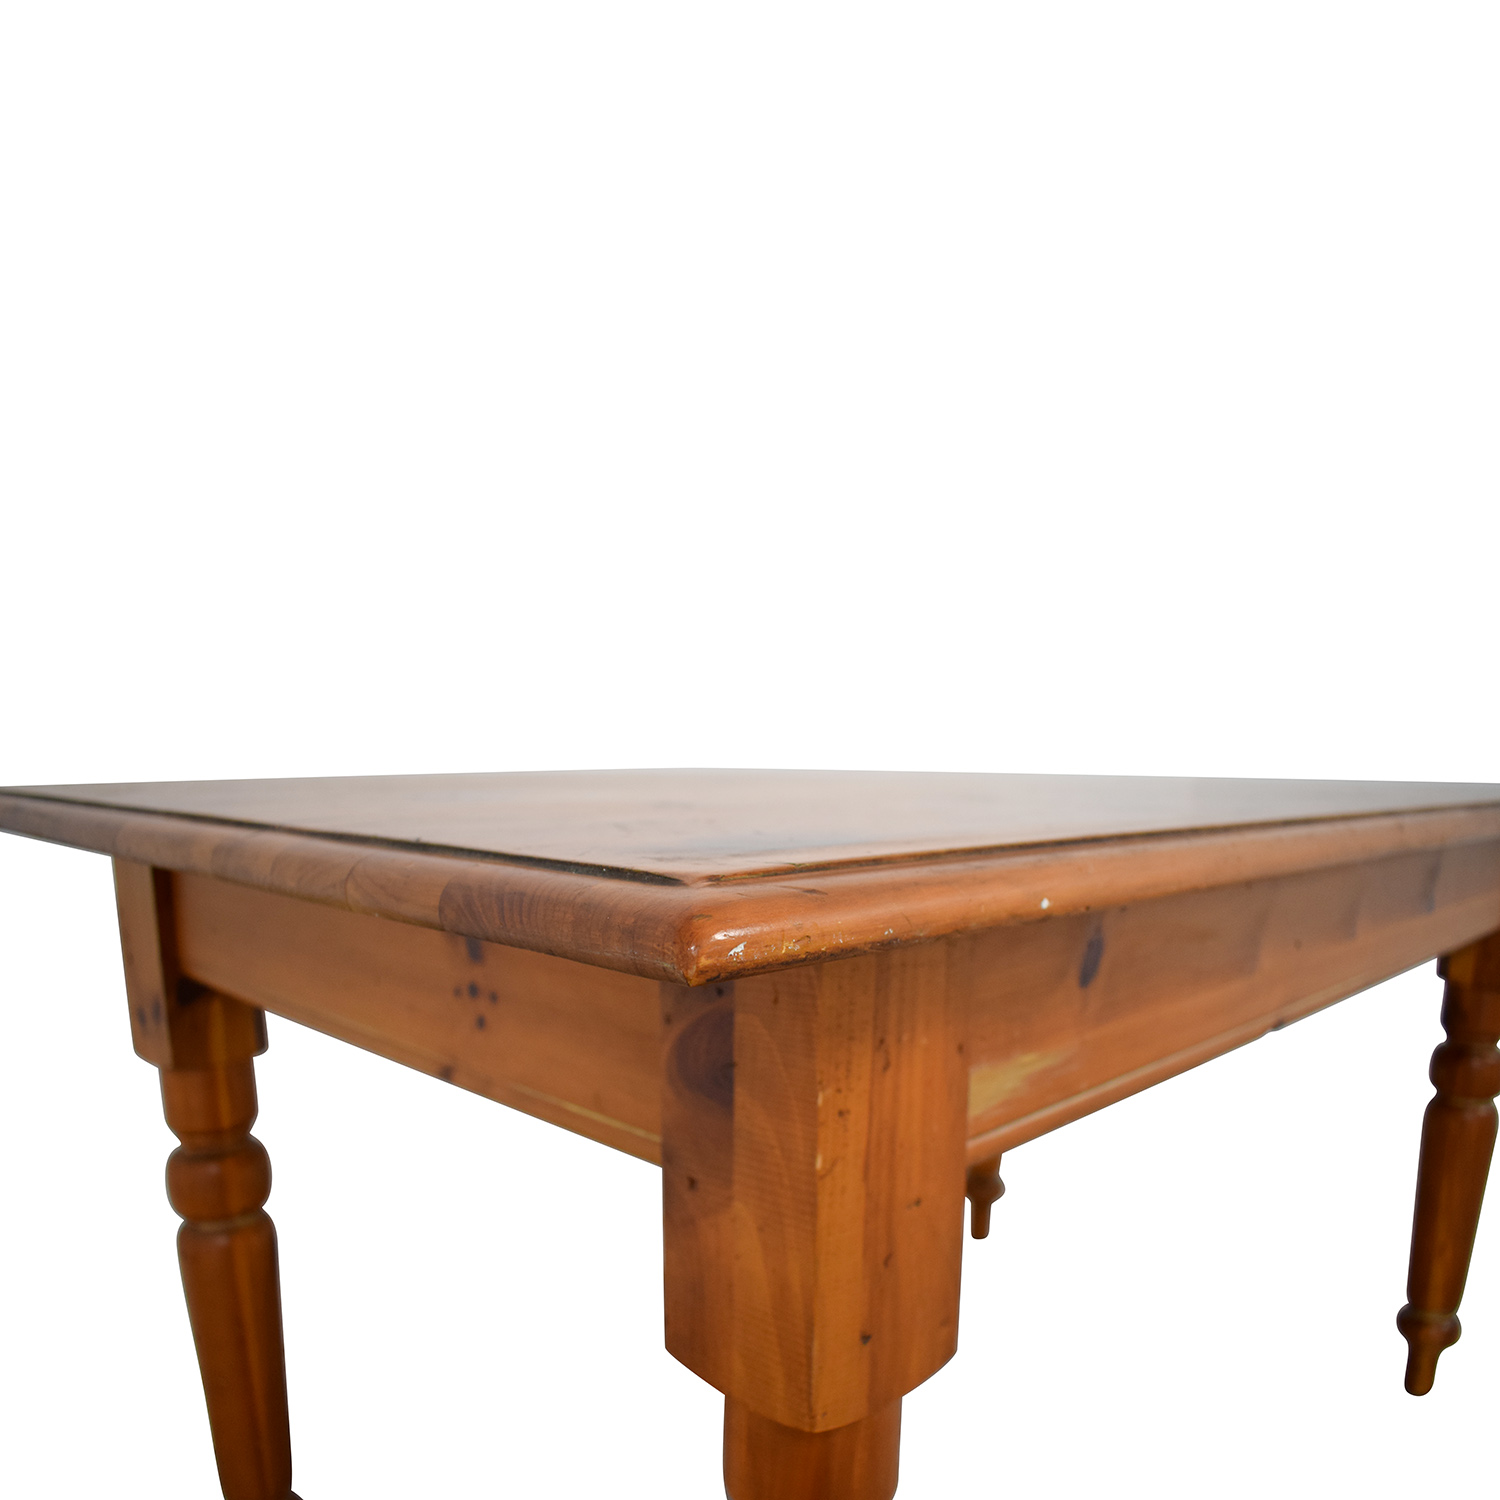 Southern Furniture Reproductions Southern Furniture Reproductions Dinner Table price